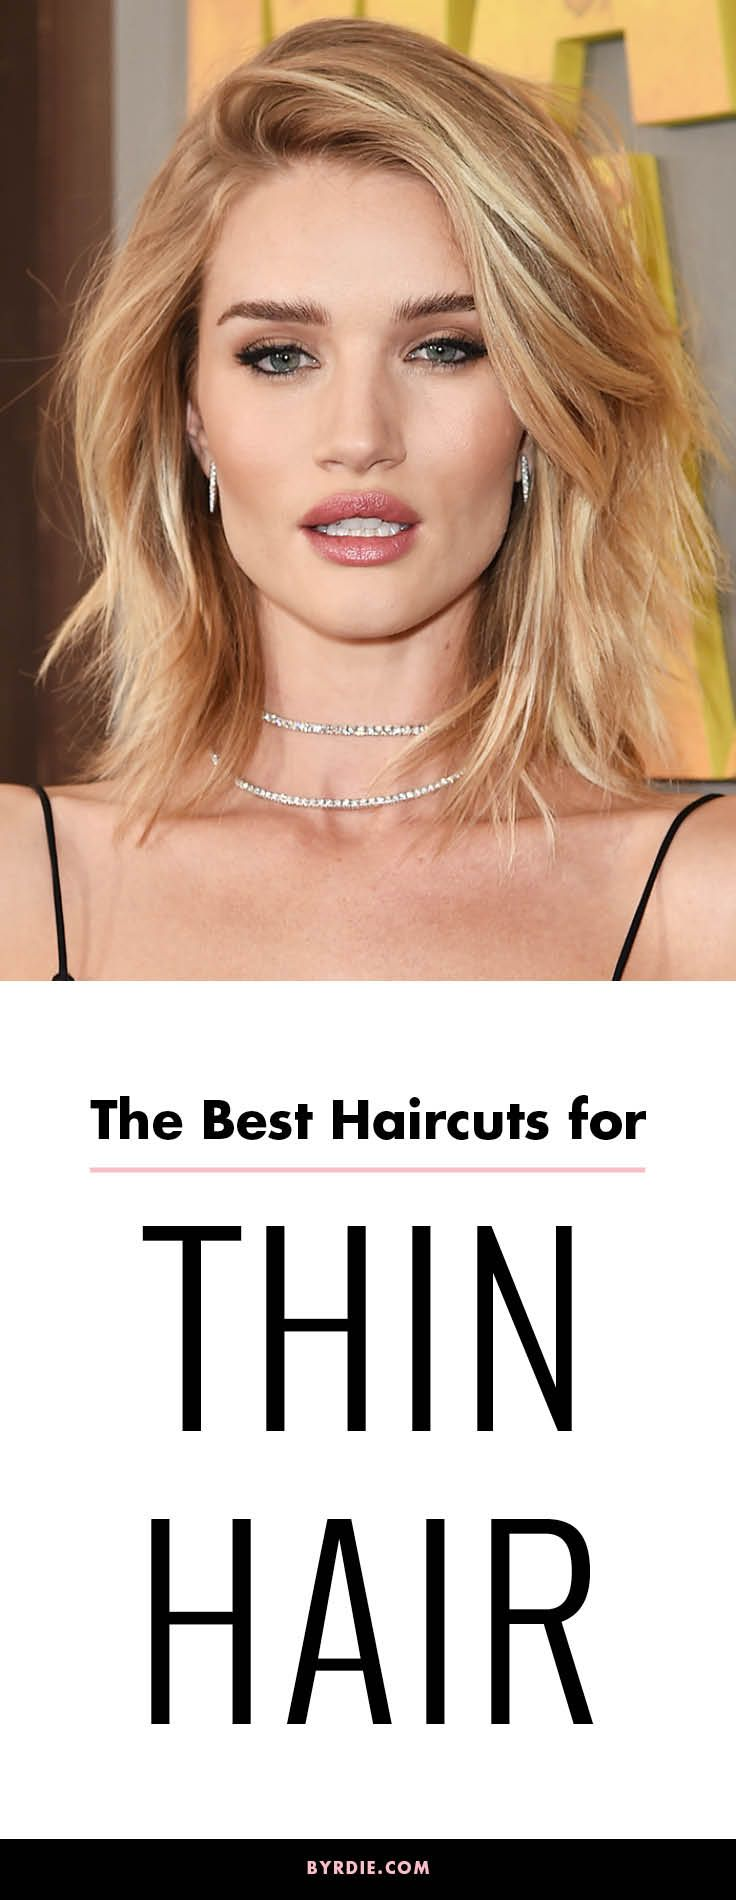 medium to short haircuts for fine hair 25 best ideas about thin hair on 3626 | 71fd249e724ab075b2798ad0504112bd